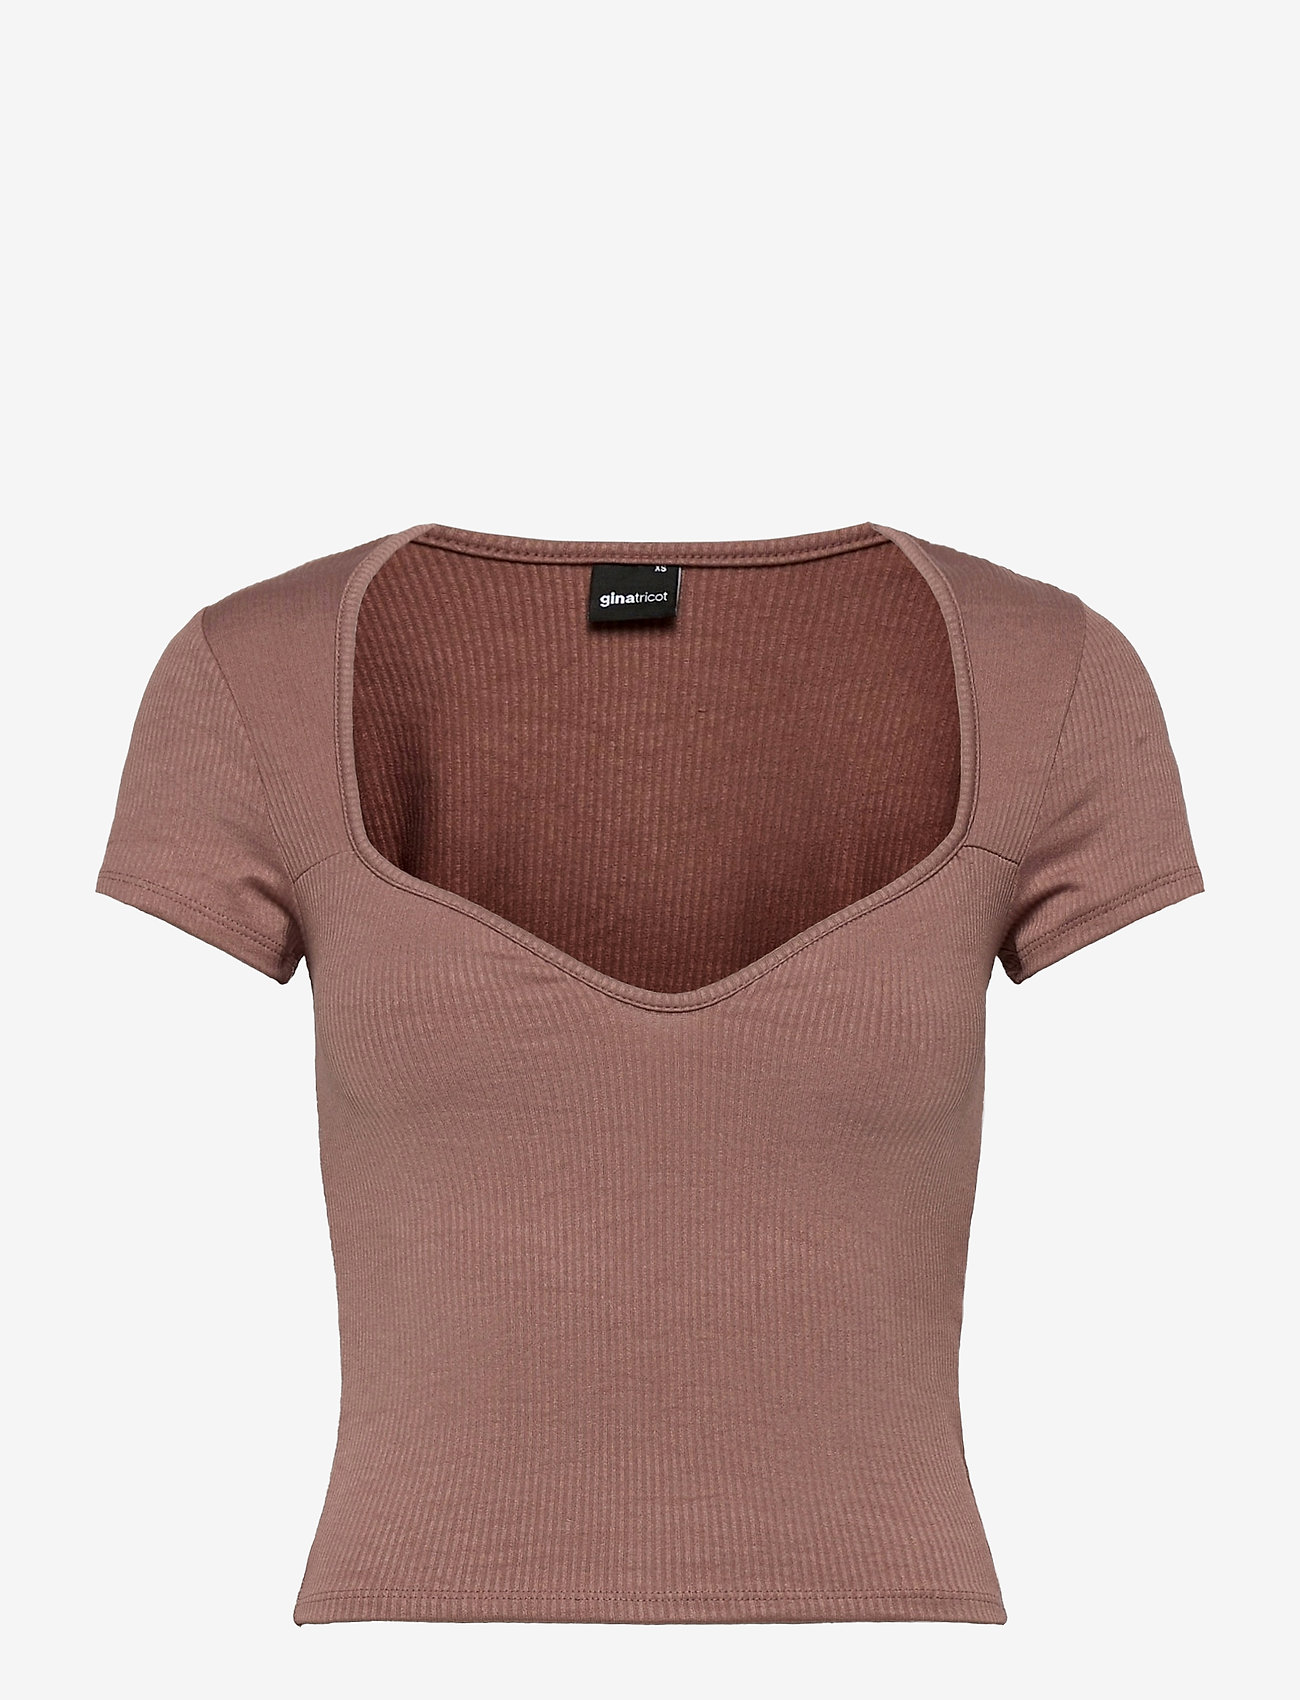 Gina Tricot - Margot bustier top - t-shirts - antier (9693) - 0